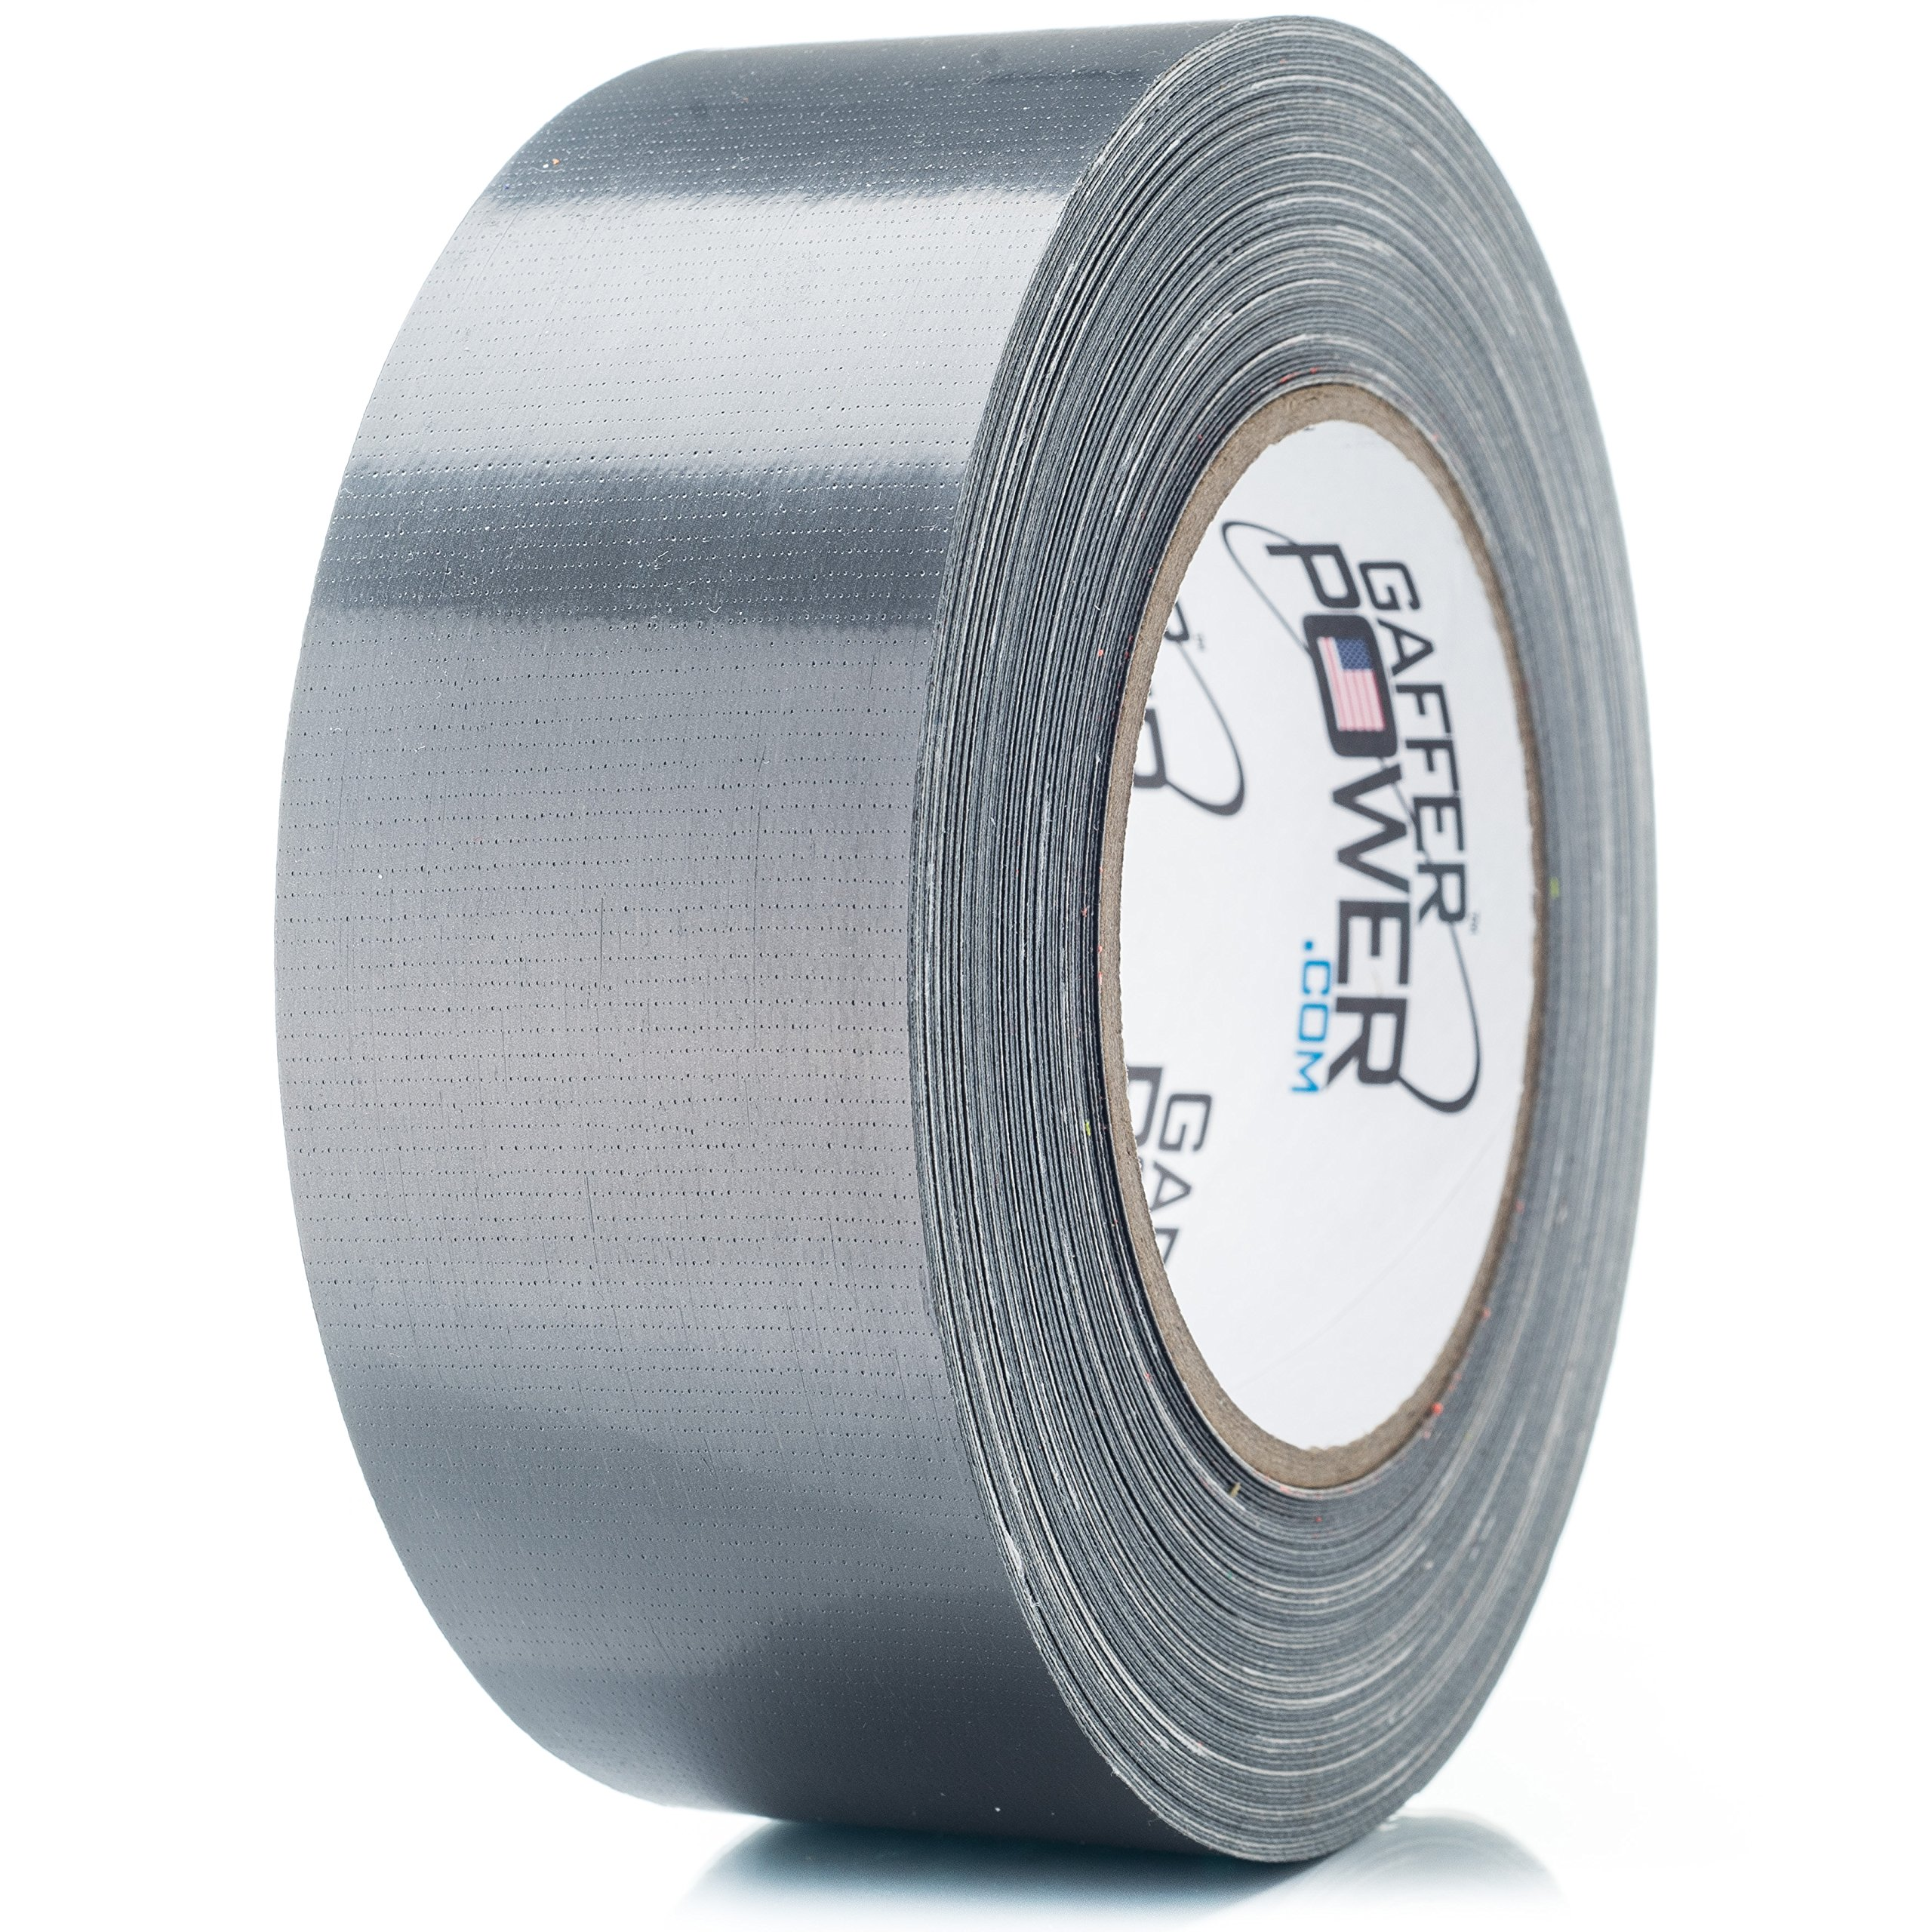 Gaffer Power PowerSteel Heavy Duty Duct Tape - 2 in X 25 Yards - Insulation, Ducting & HVAC Tape | Strong, Waterproof & Weather Resistant | Indoor & Outdoor Use | Residential, Commercial & Industrial by Gaffer Power